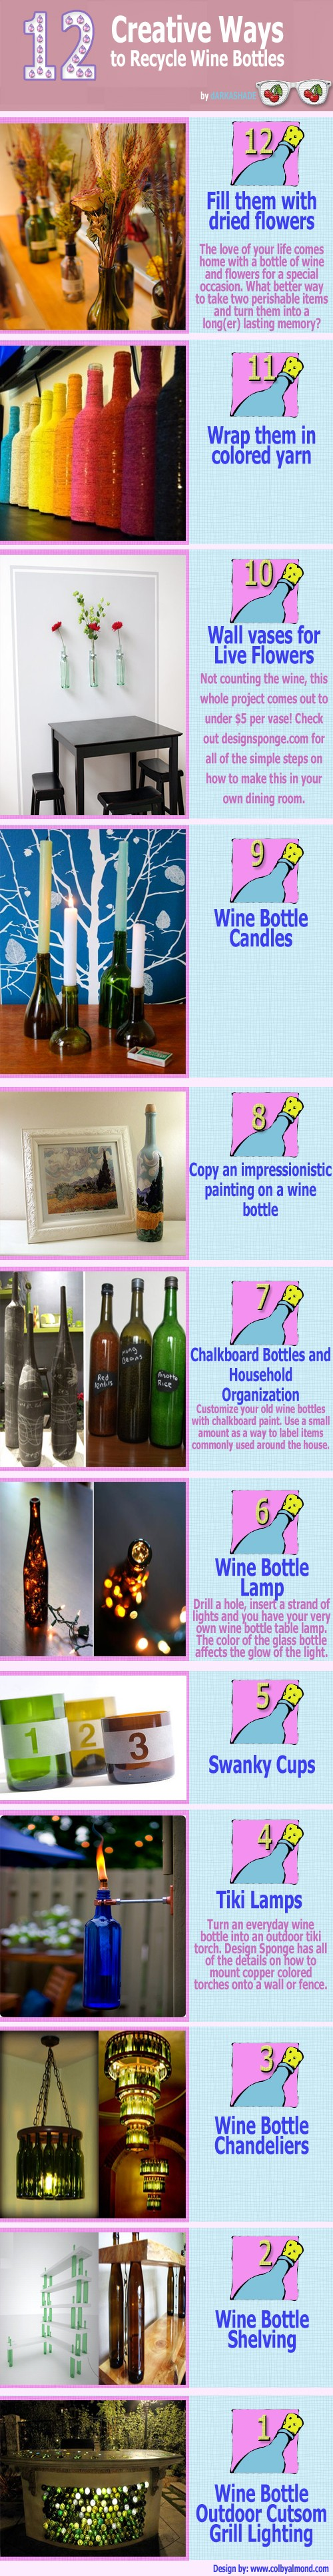 12 Ways to Recycle Wine Bottles Infographic